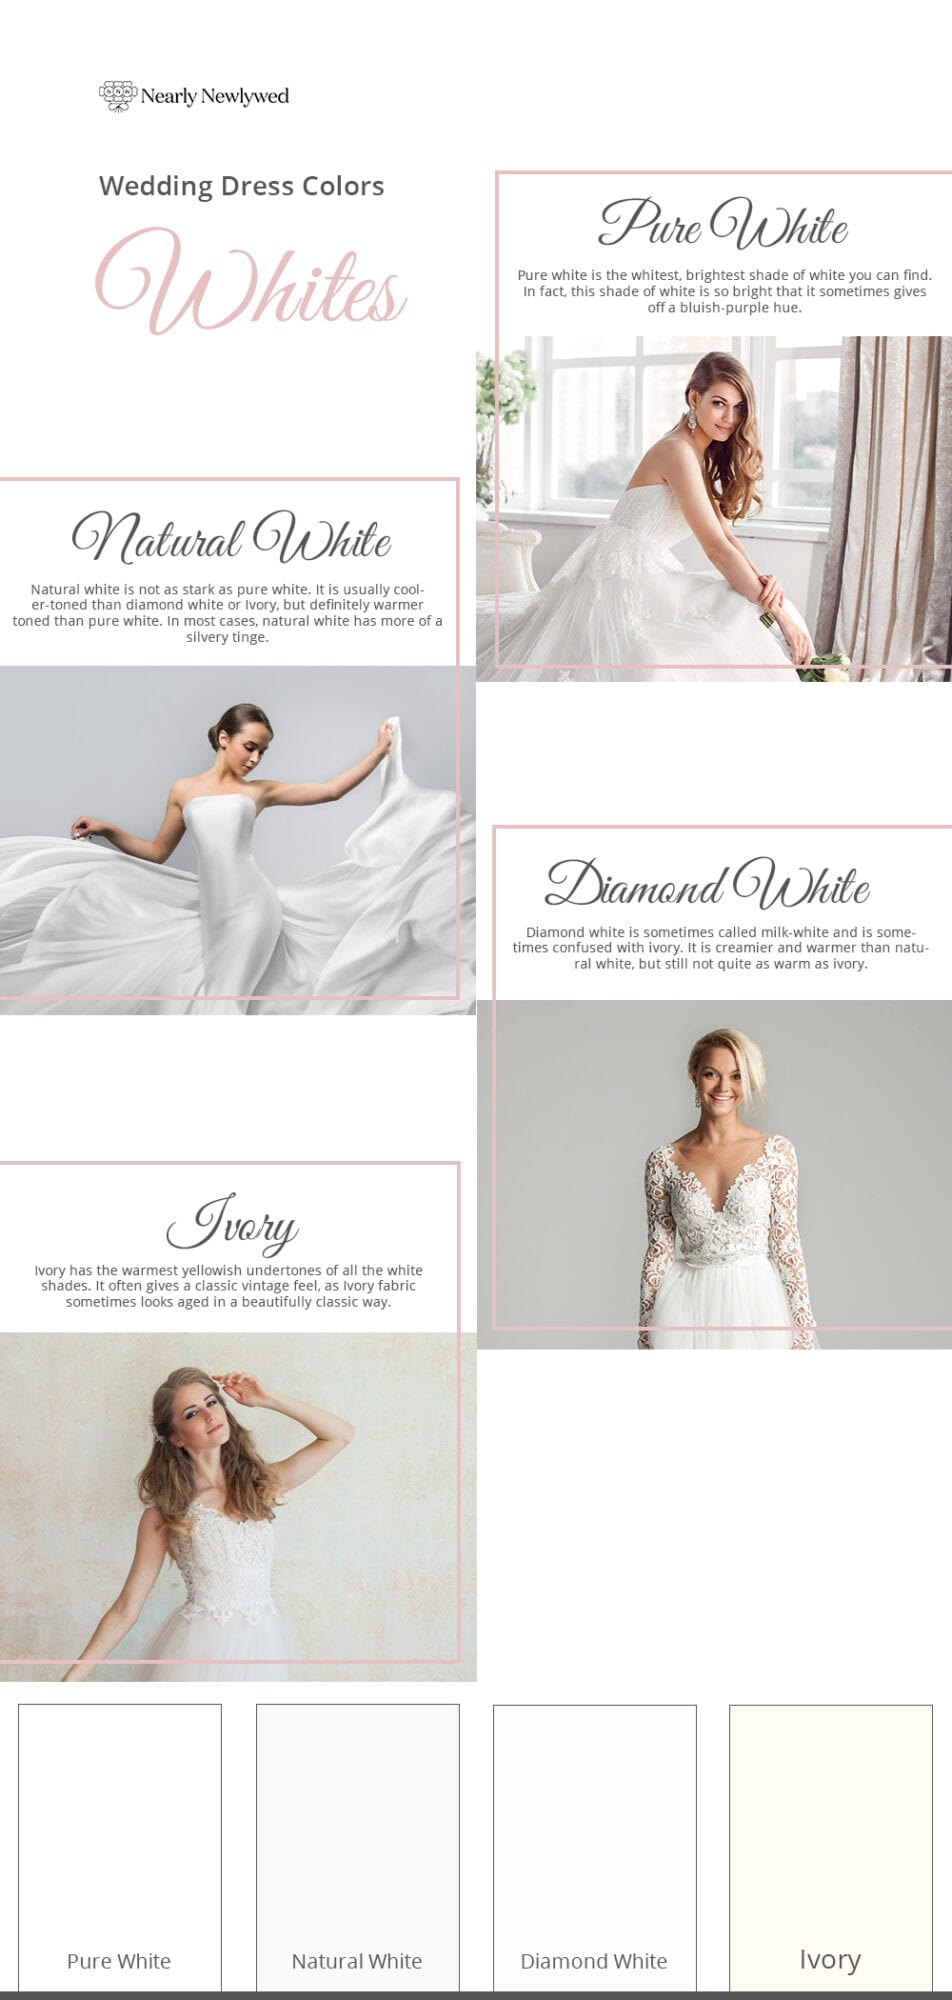 White wedding dress color guide and palette